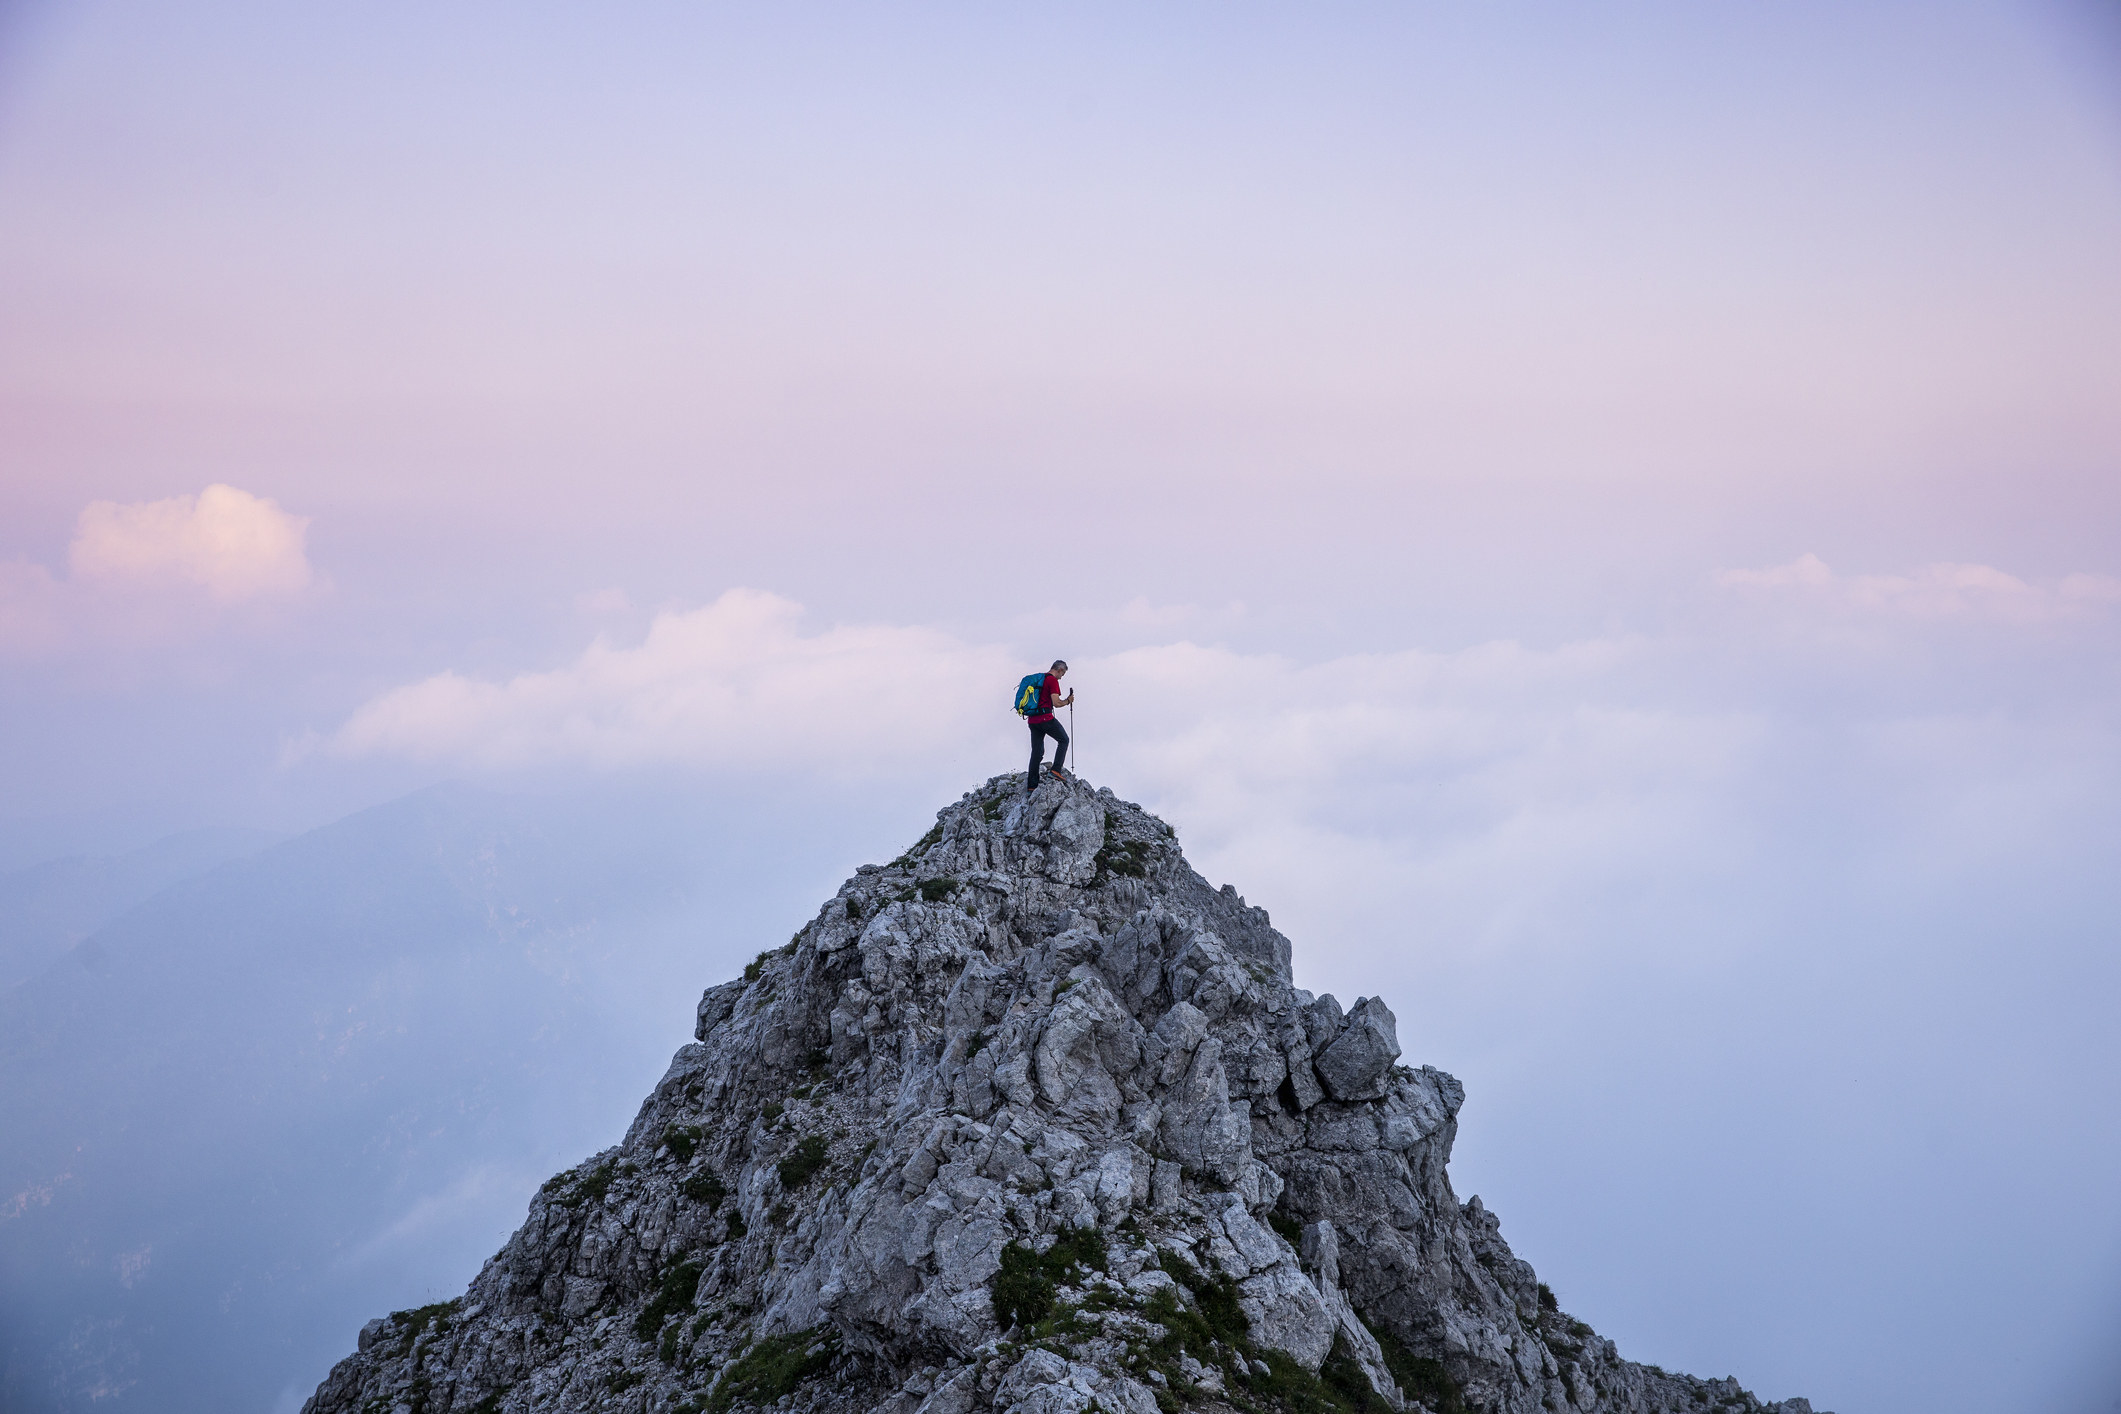 A hiker at the top of a mountain